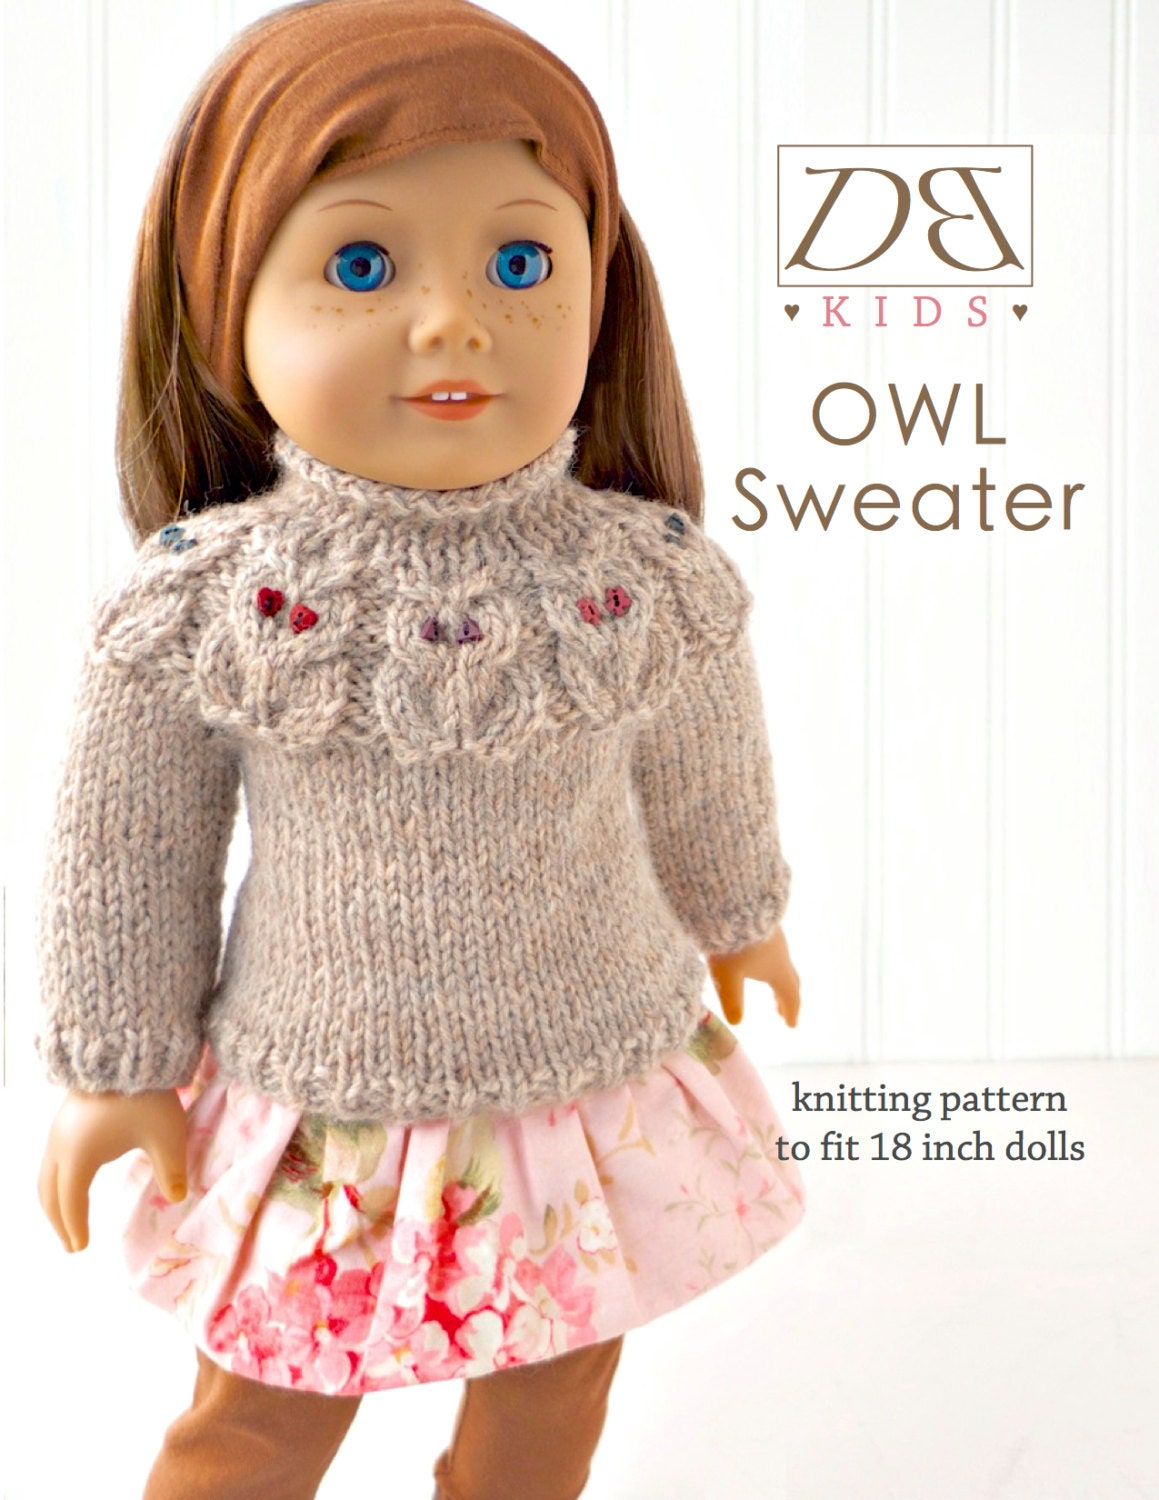 Knitting Patterns For 17 Inch Dolls : Doll clothes knitting pattern PDF for 18 inch American Girl